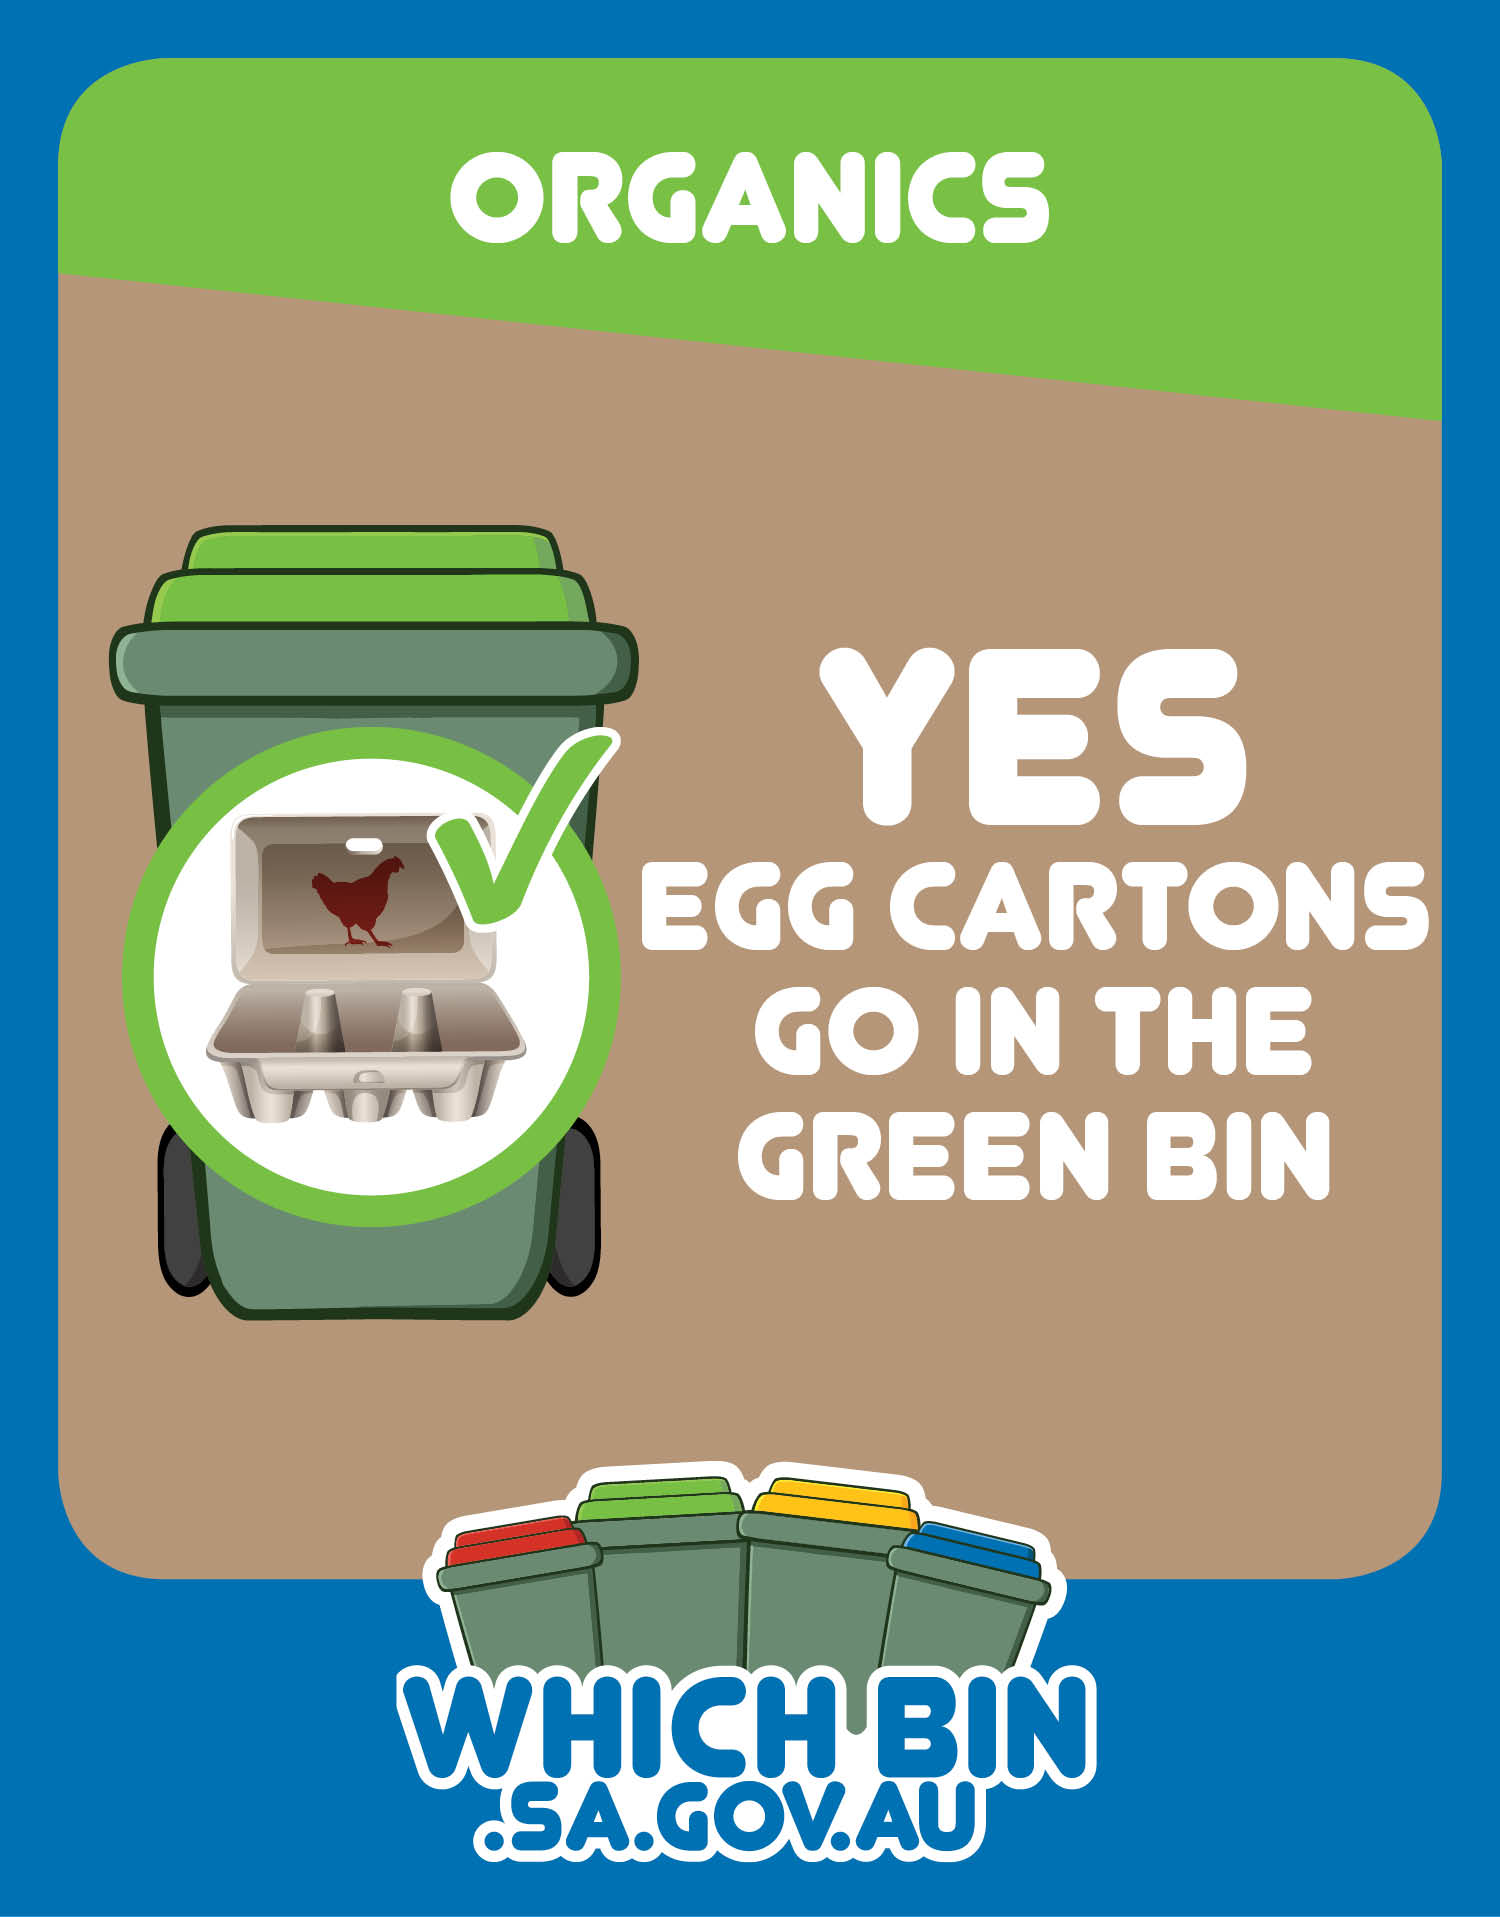 Cardboard egg cartons are good to go in the green bin.